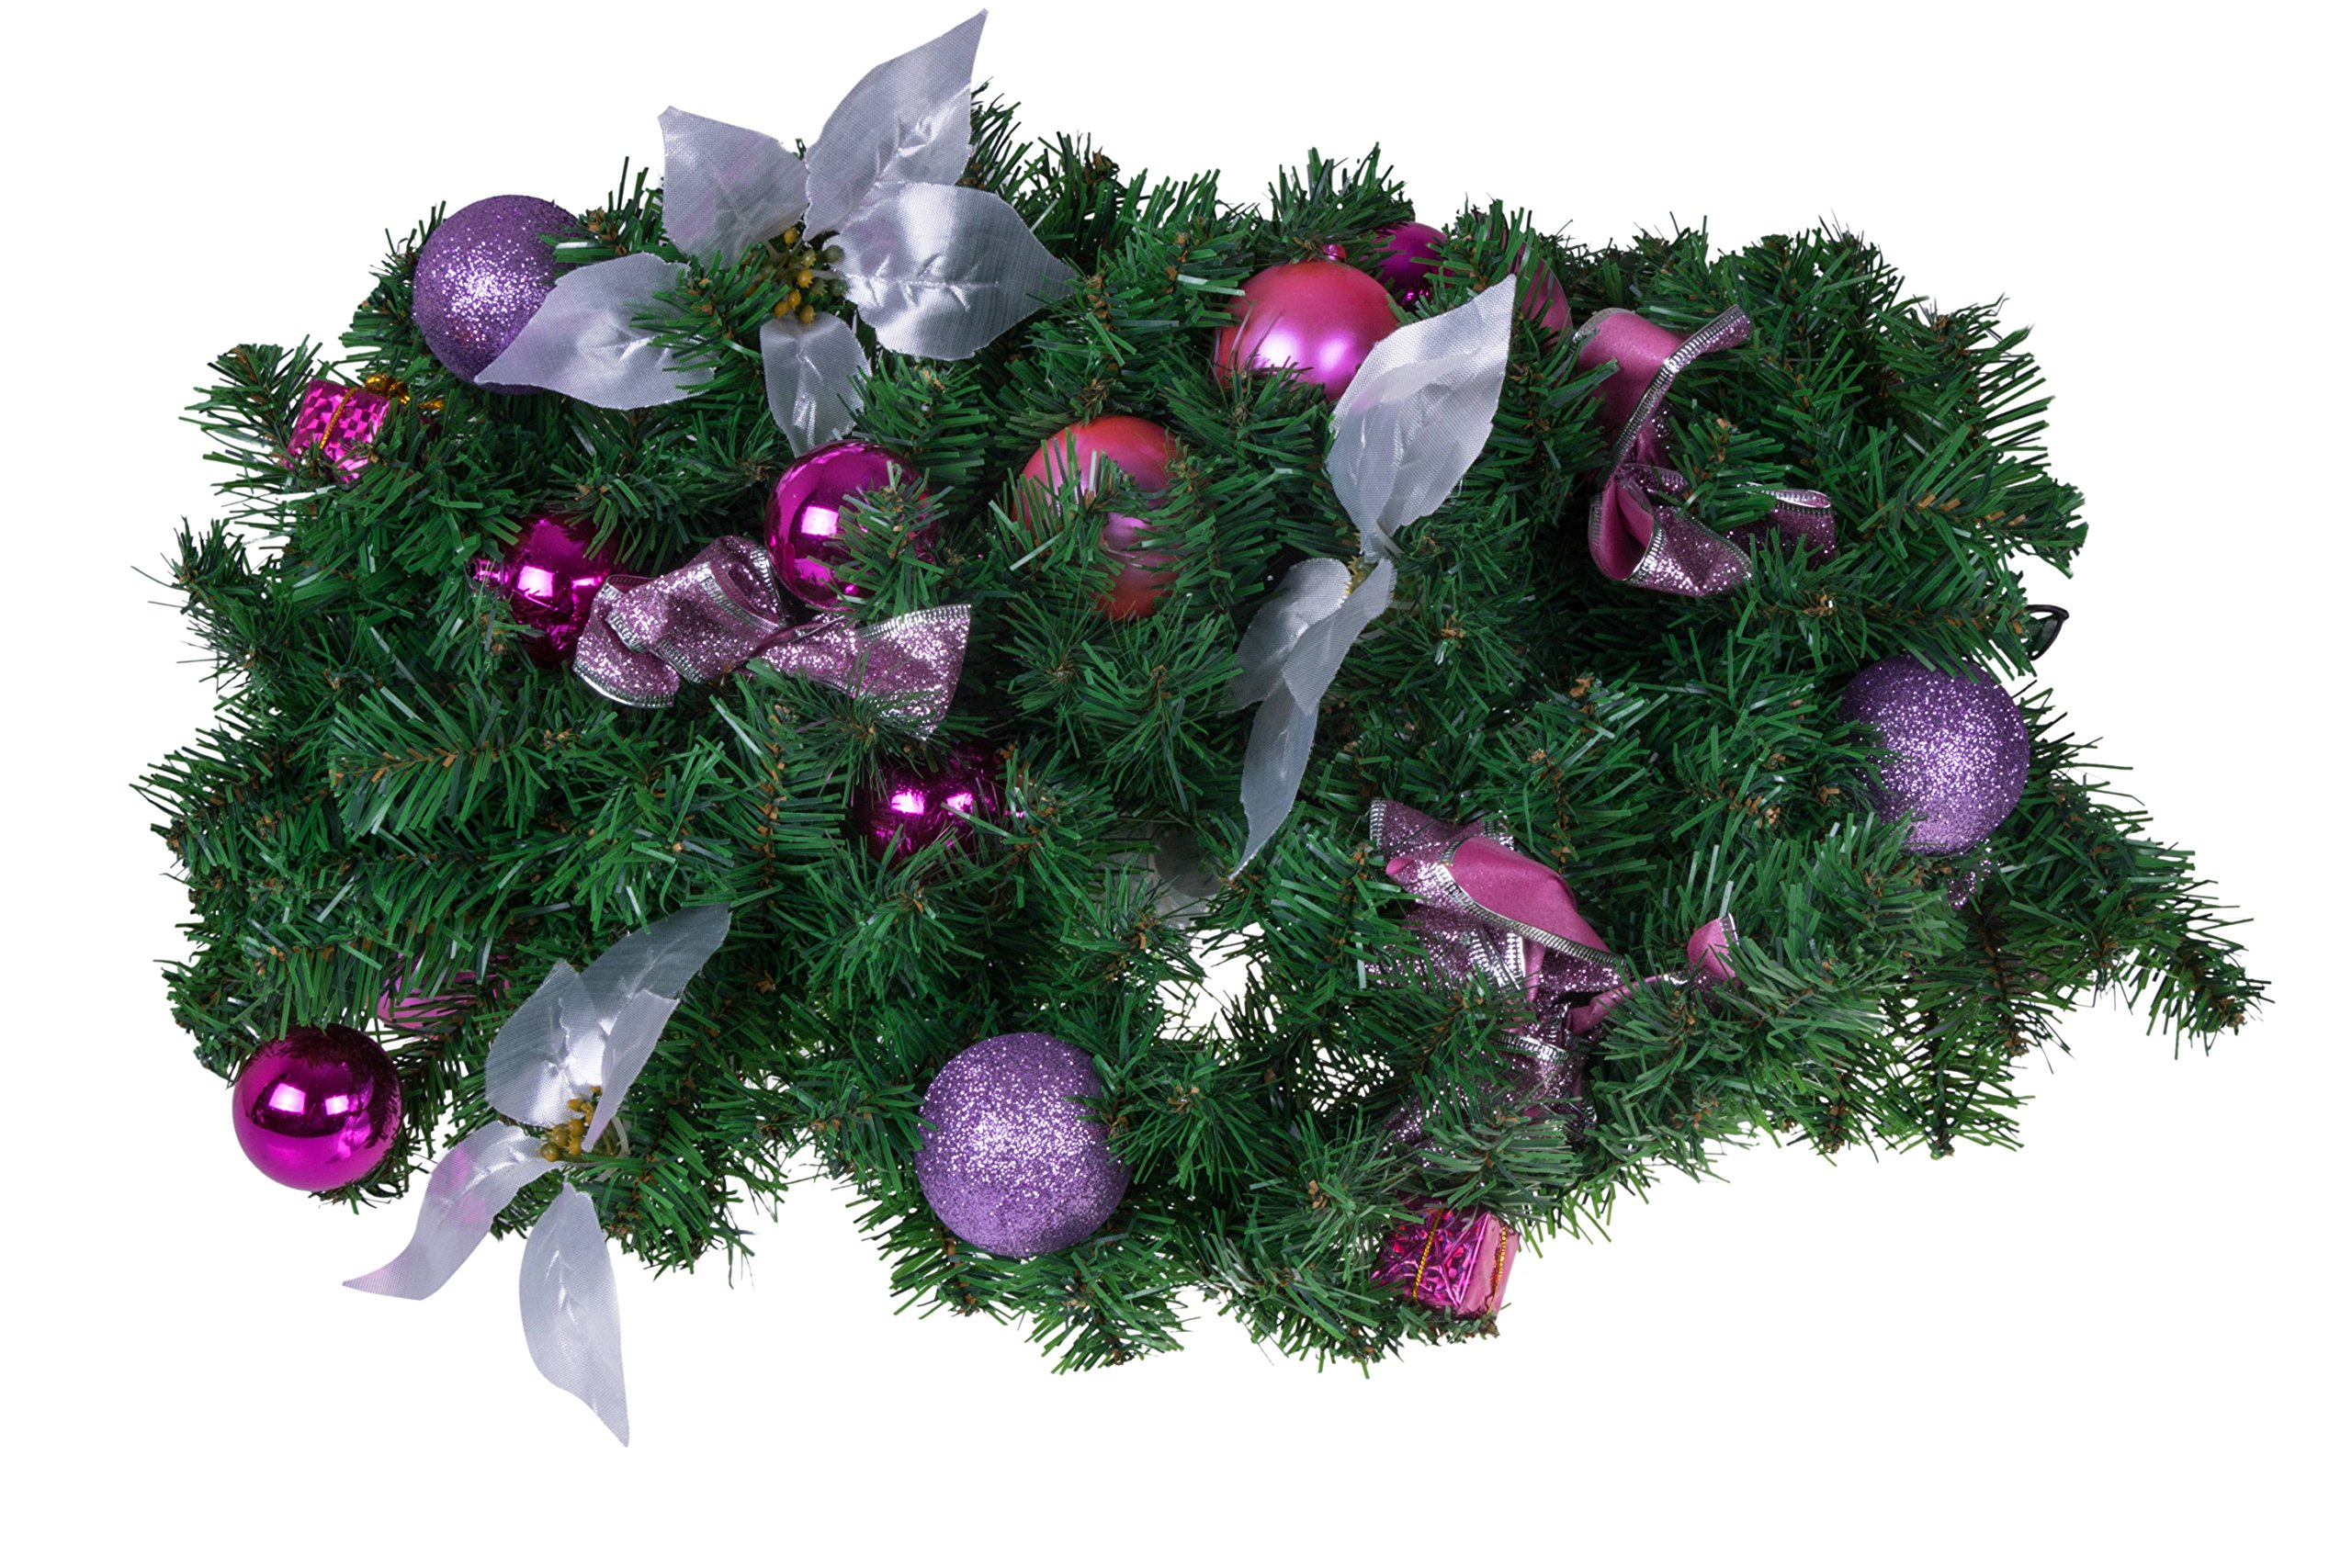 Christmas Tree Branch Garland by Clever Creations | Pink and Purple Shatter Resistant Ornaments and Silver Poinsettias | Festive Holiday Décor | Poseable Branches | Artificial Pine Needles | 8.5' Long